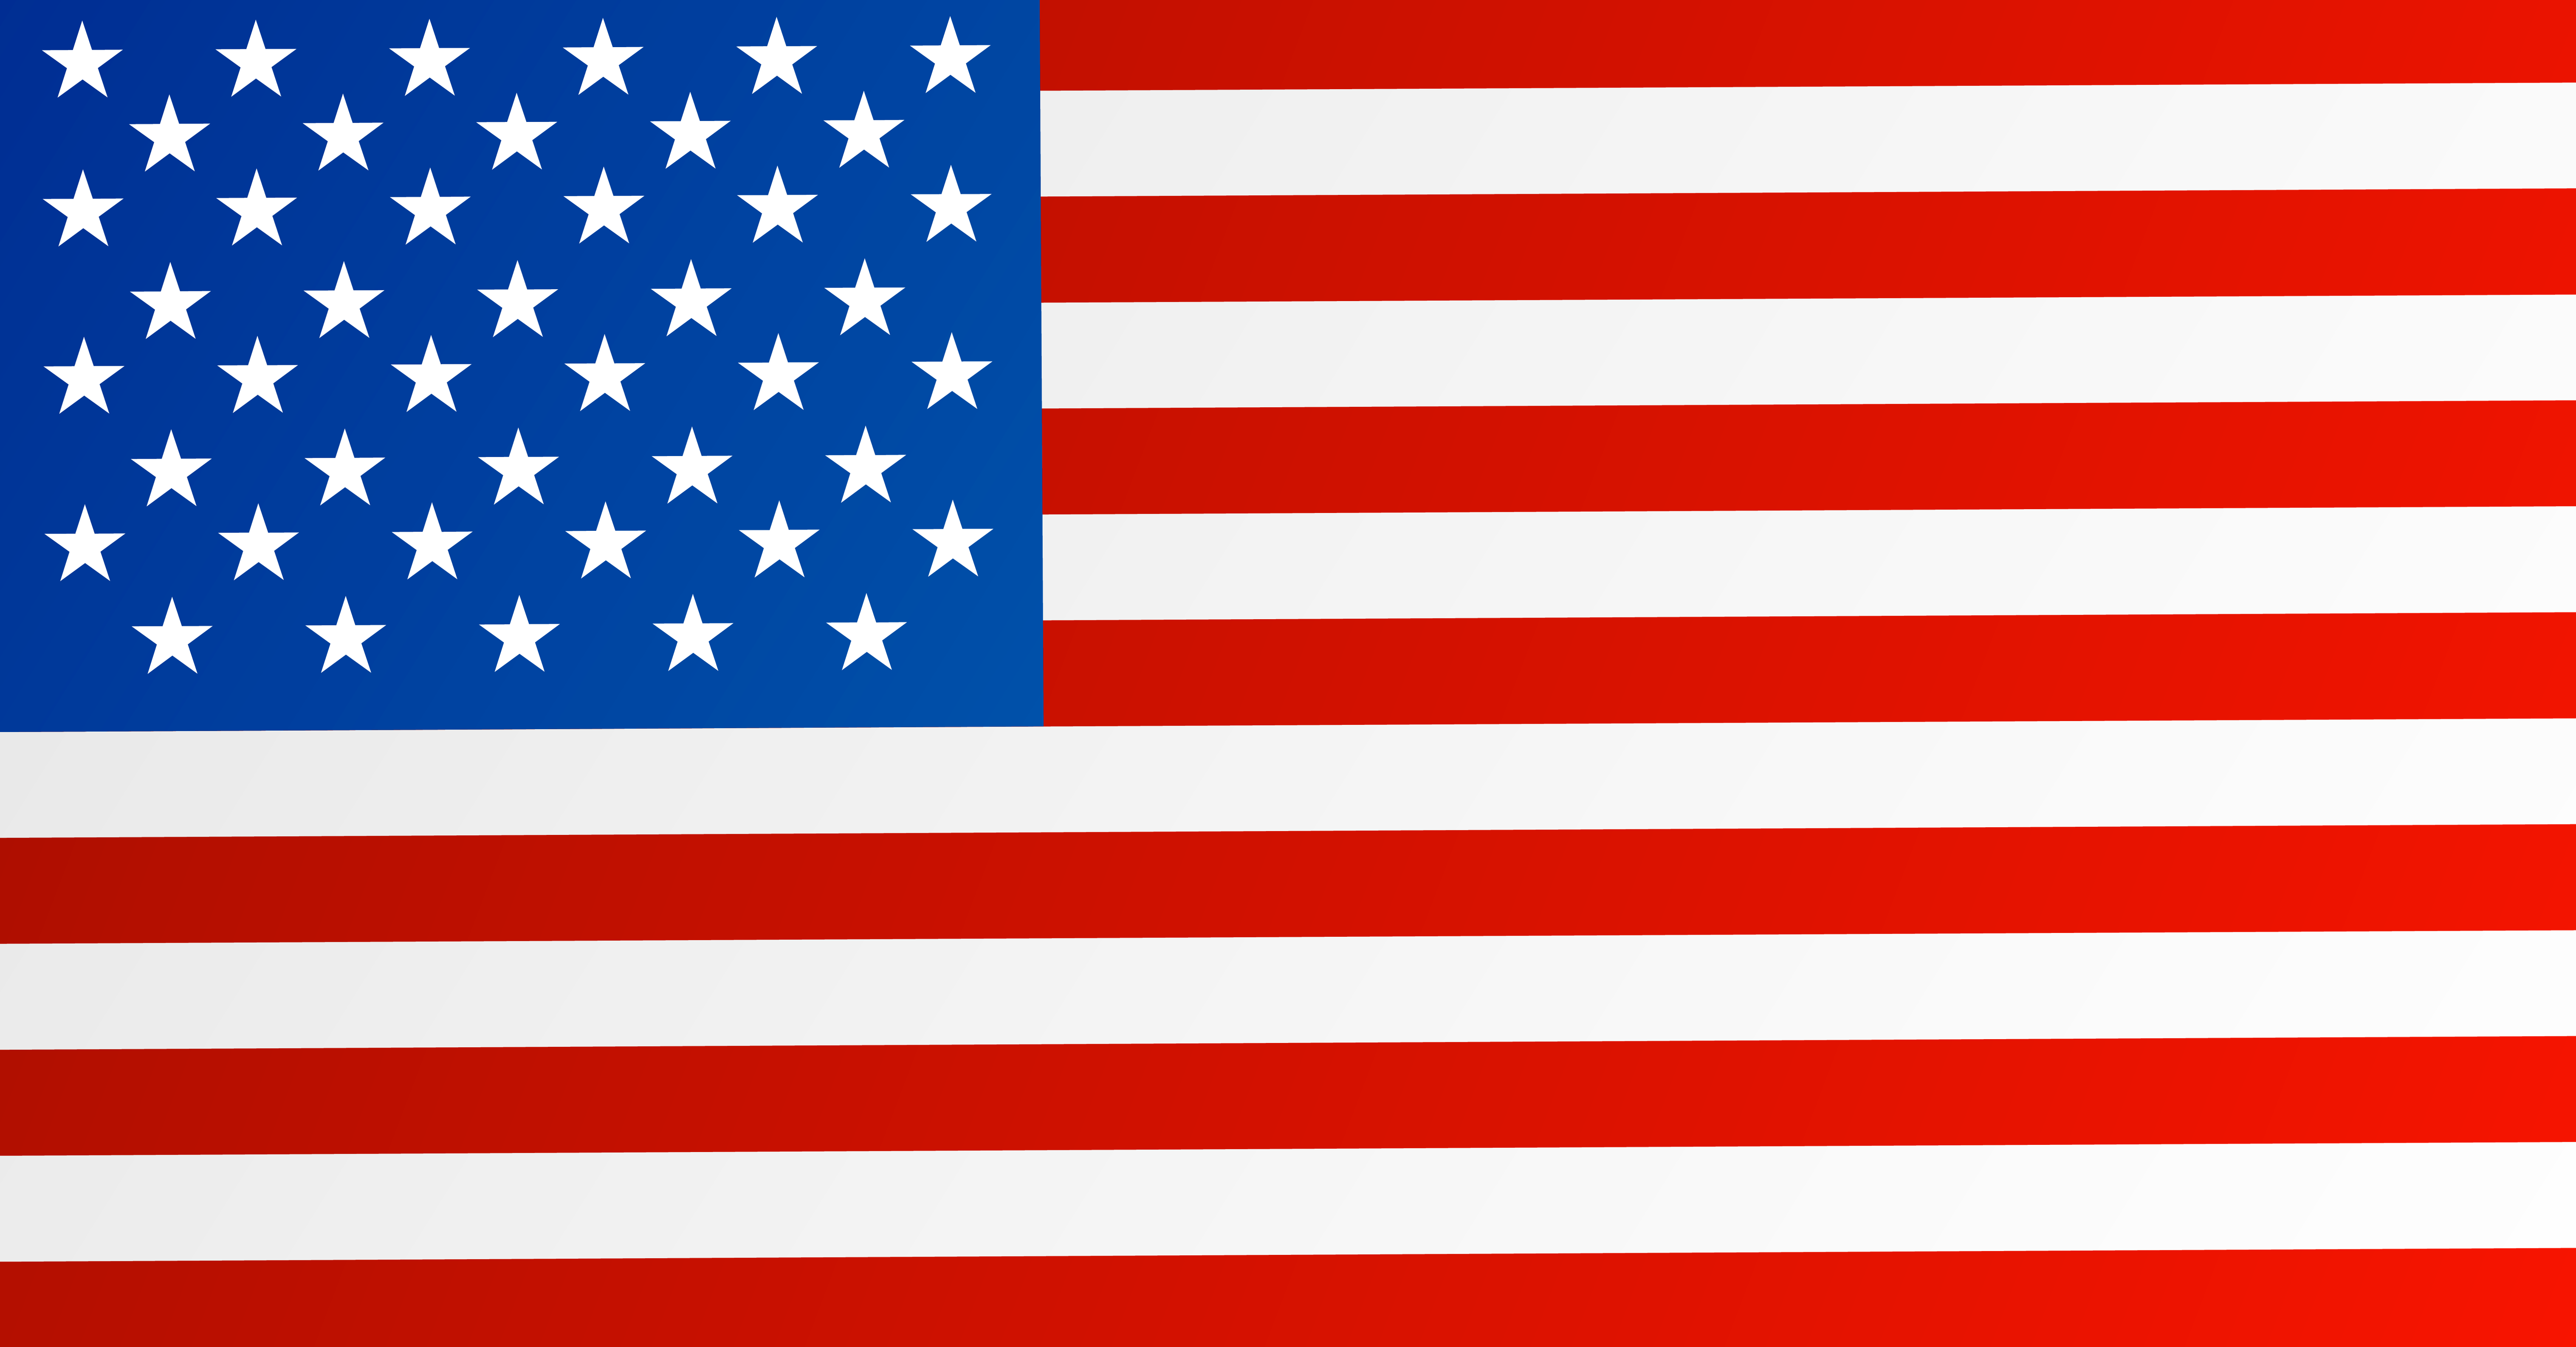 United states distressed flag clipart banner black and white Distressed american flag clipart png - ClipartFest banner black and white